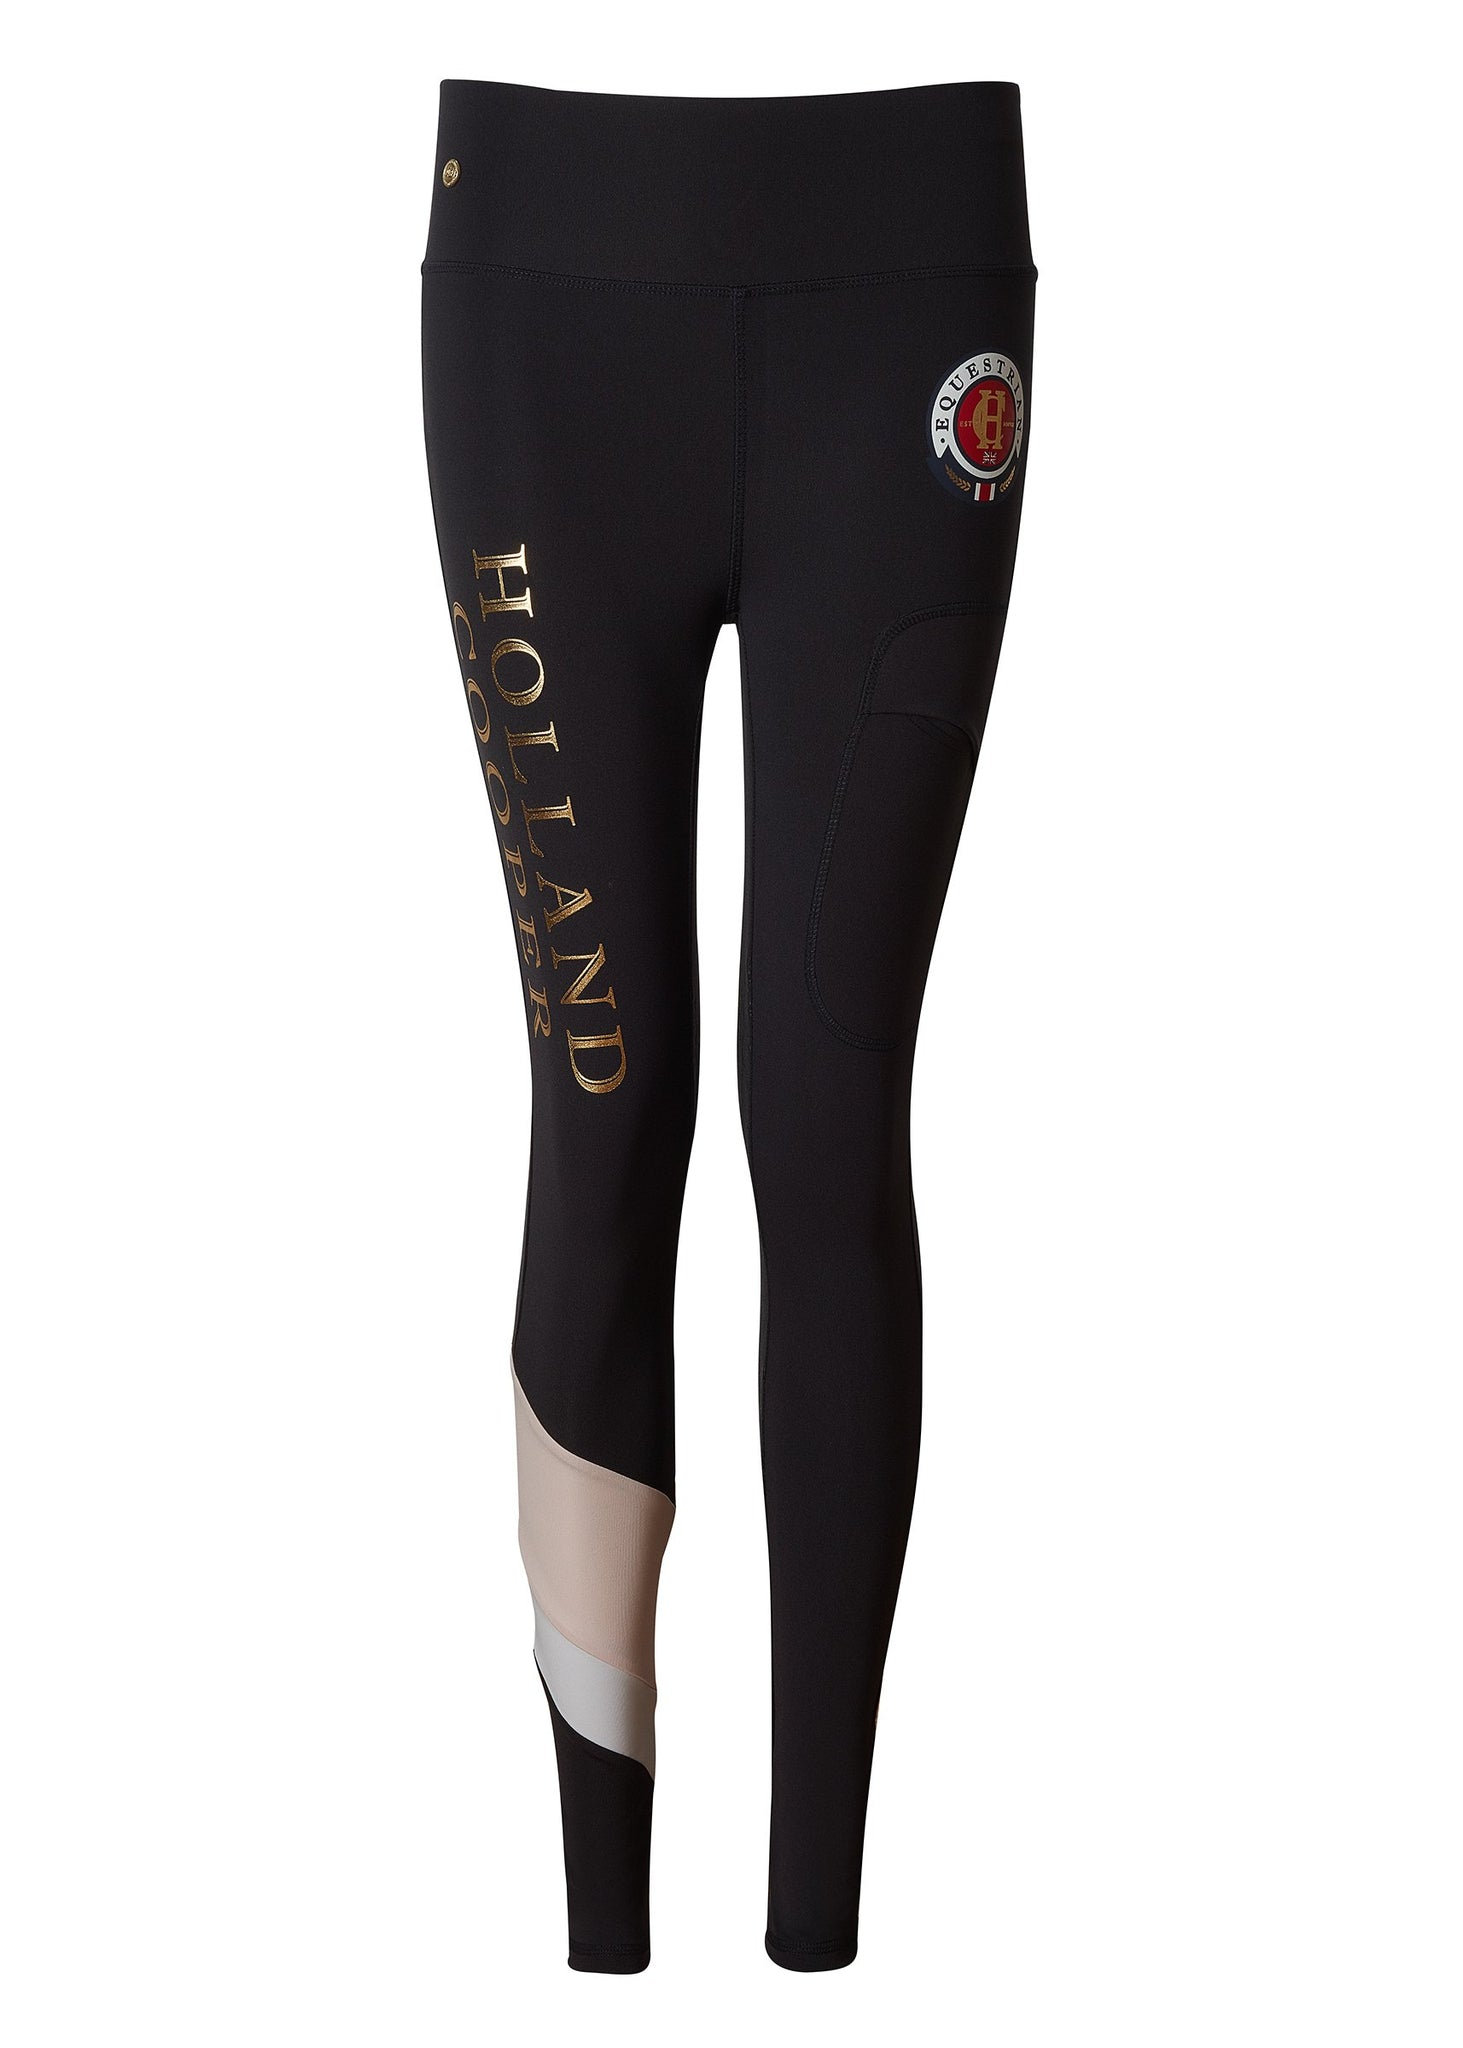 Heritage Legging (Charcoal)